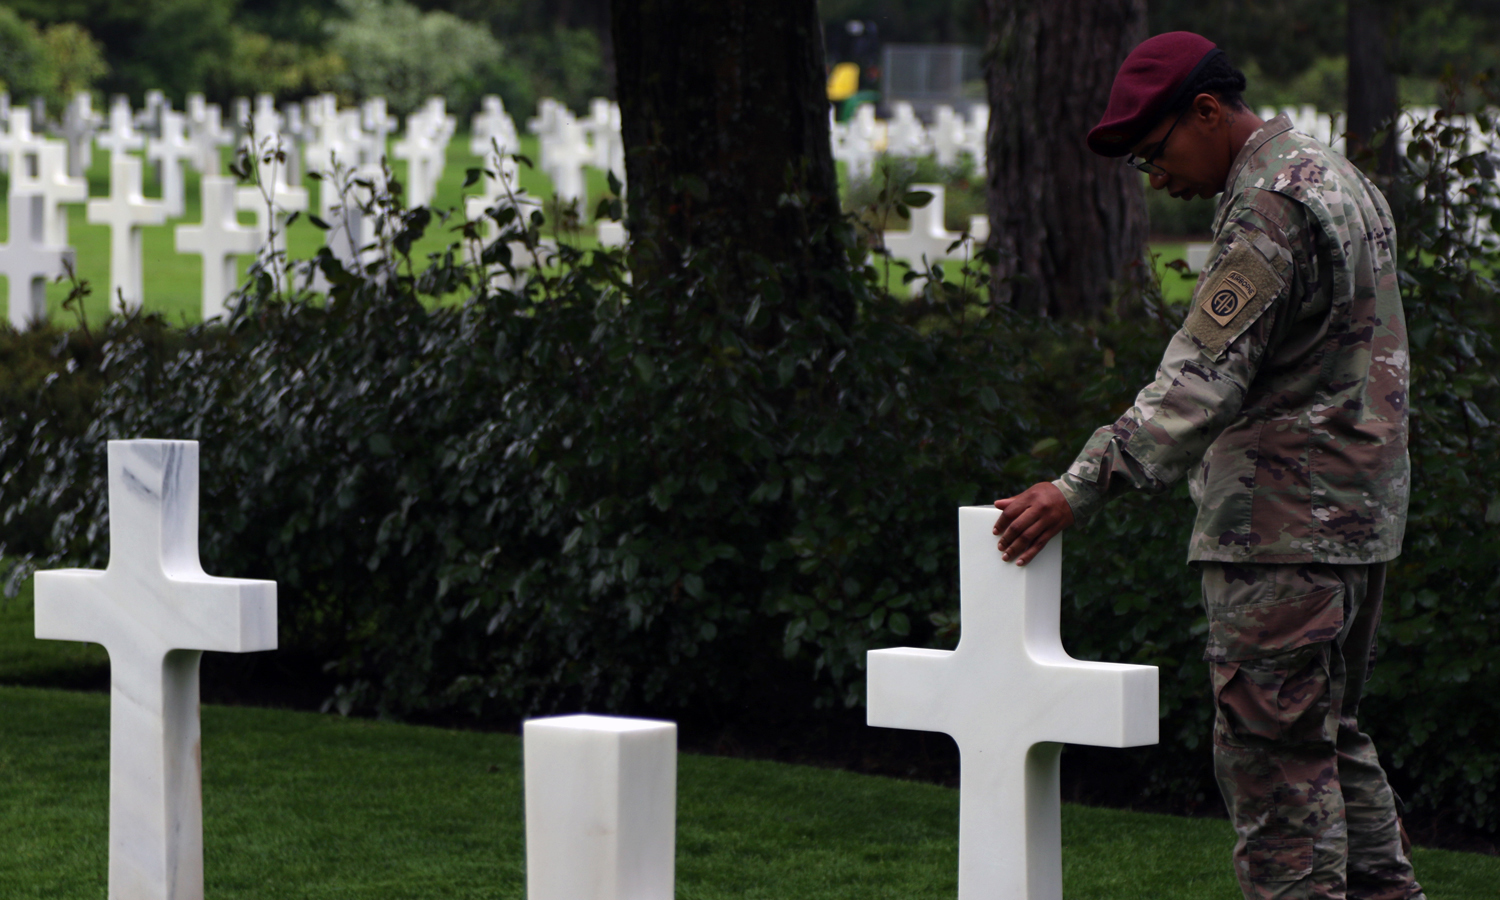 Staff Sgt. Mavis Bradford, an 82nd Airborne Division choir member, spends a solemn moment at a paratroopers grave at the Normandy American Cemetery and Memorial during a staff ride on May 31, at Normandy, France. Bradford and dozens of other division paratroopers will honor the paratrooper fore fathers of the division by participating in the D-Day commemoration and ceremonies.